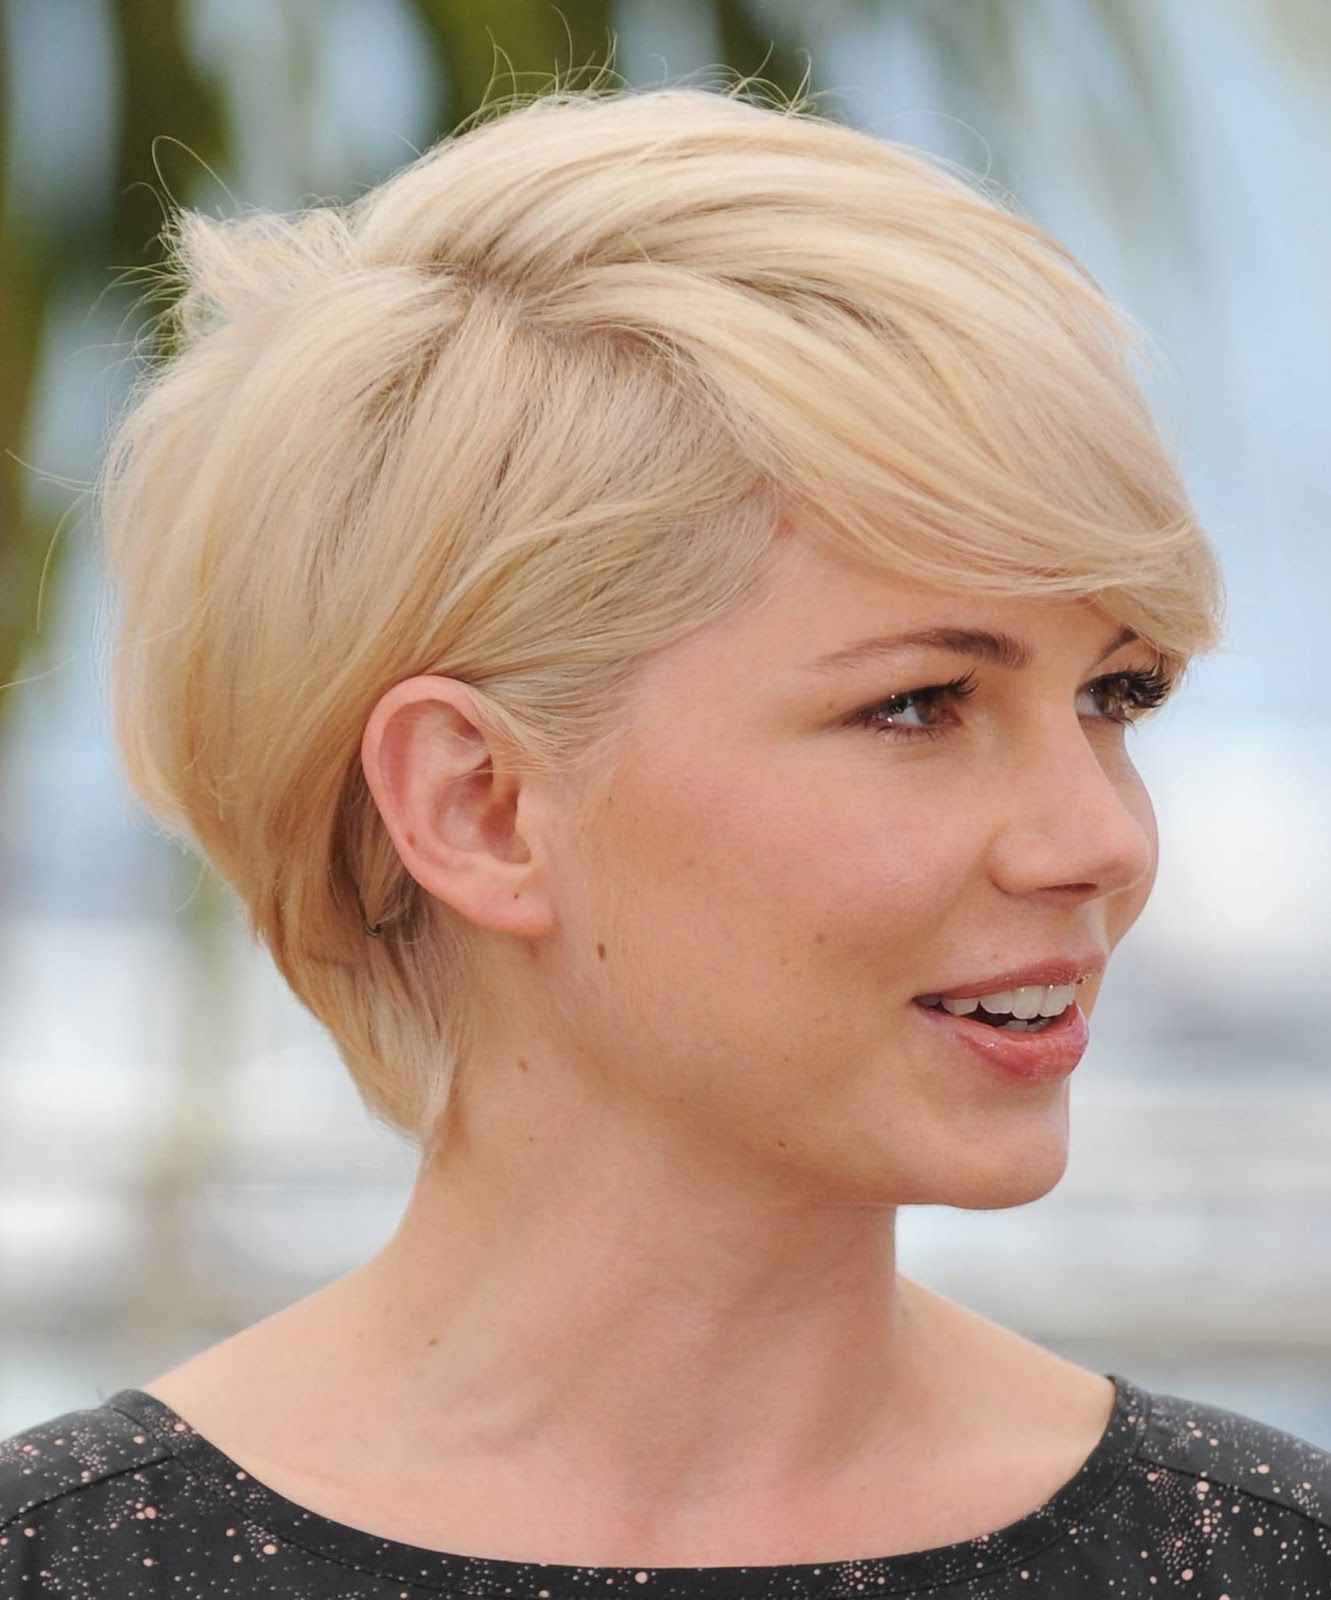 Short hair michelle williams beauty skin and not so skin deep